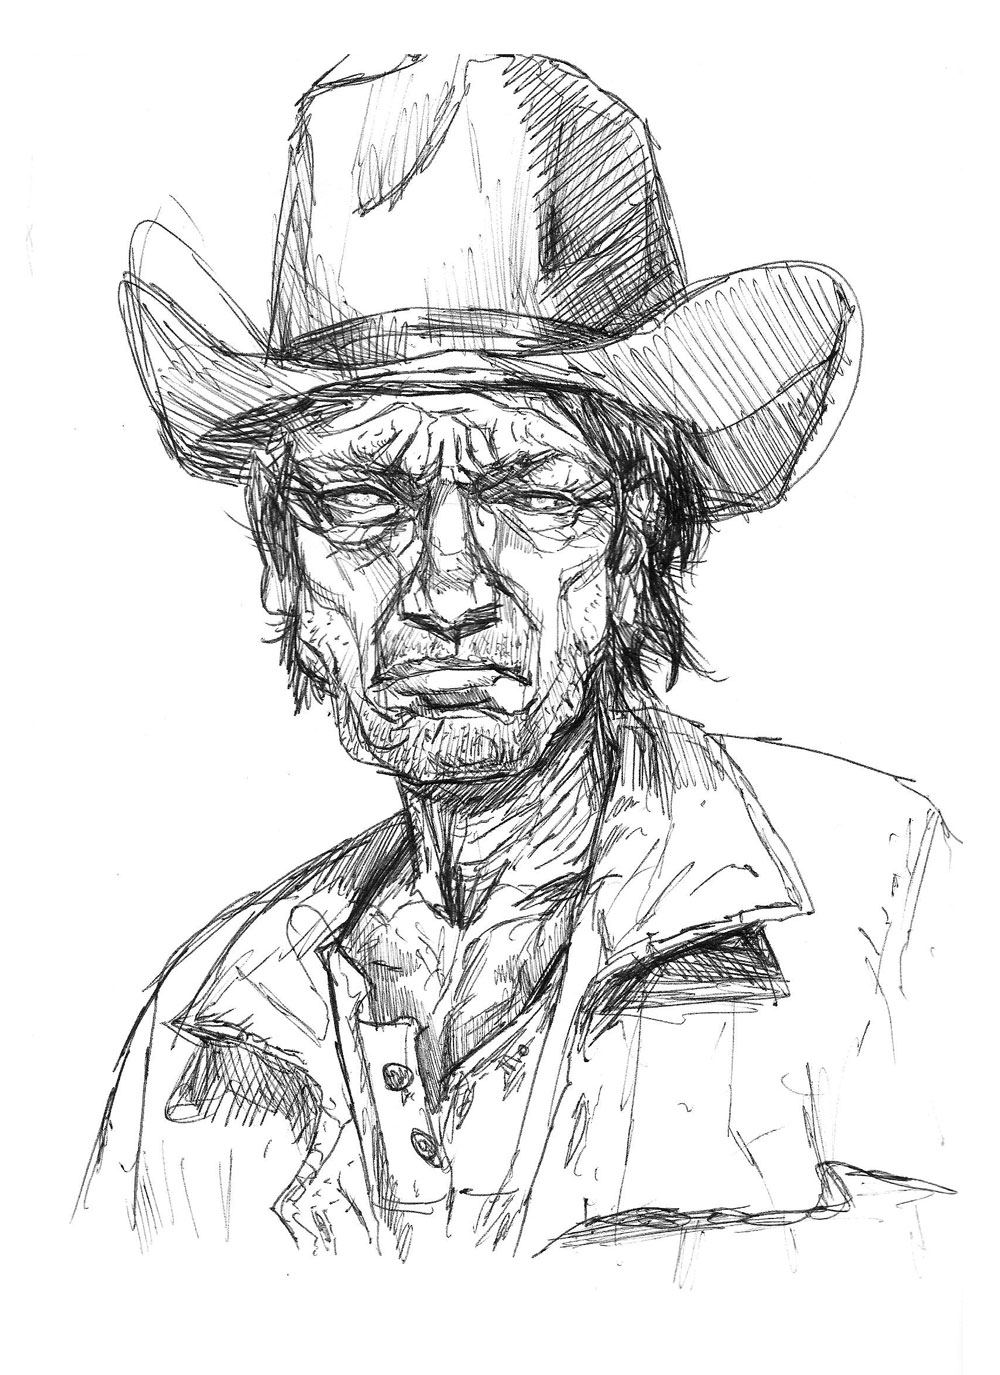 Drawn cowboy Lot the I when looking